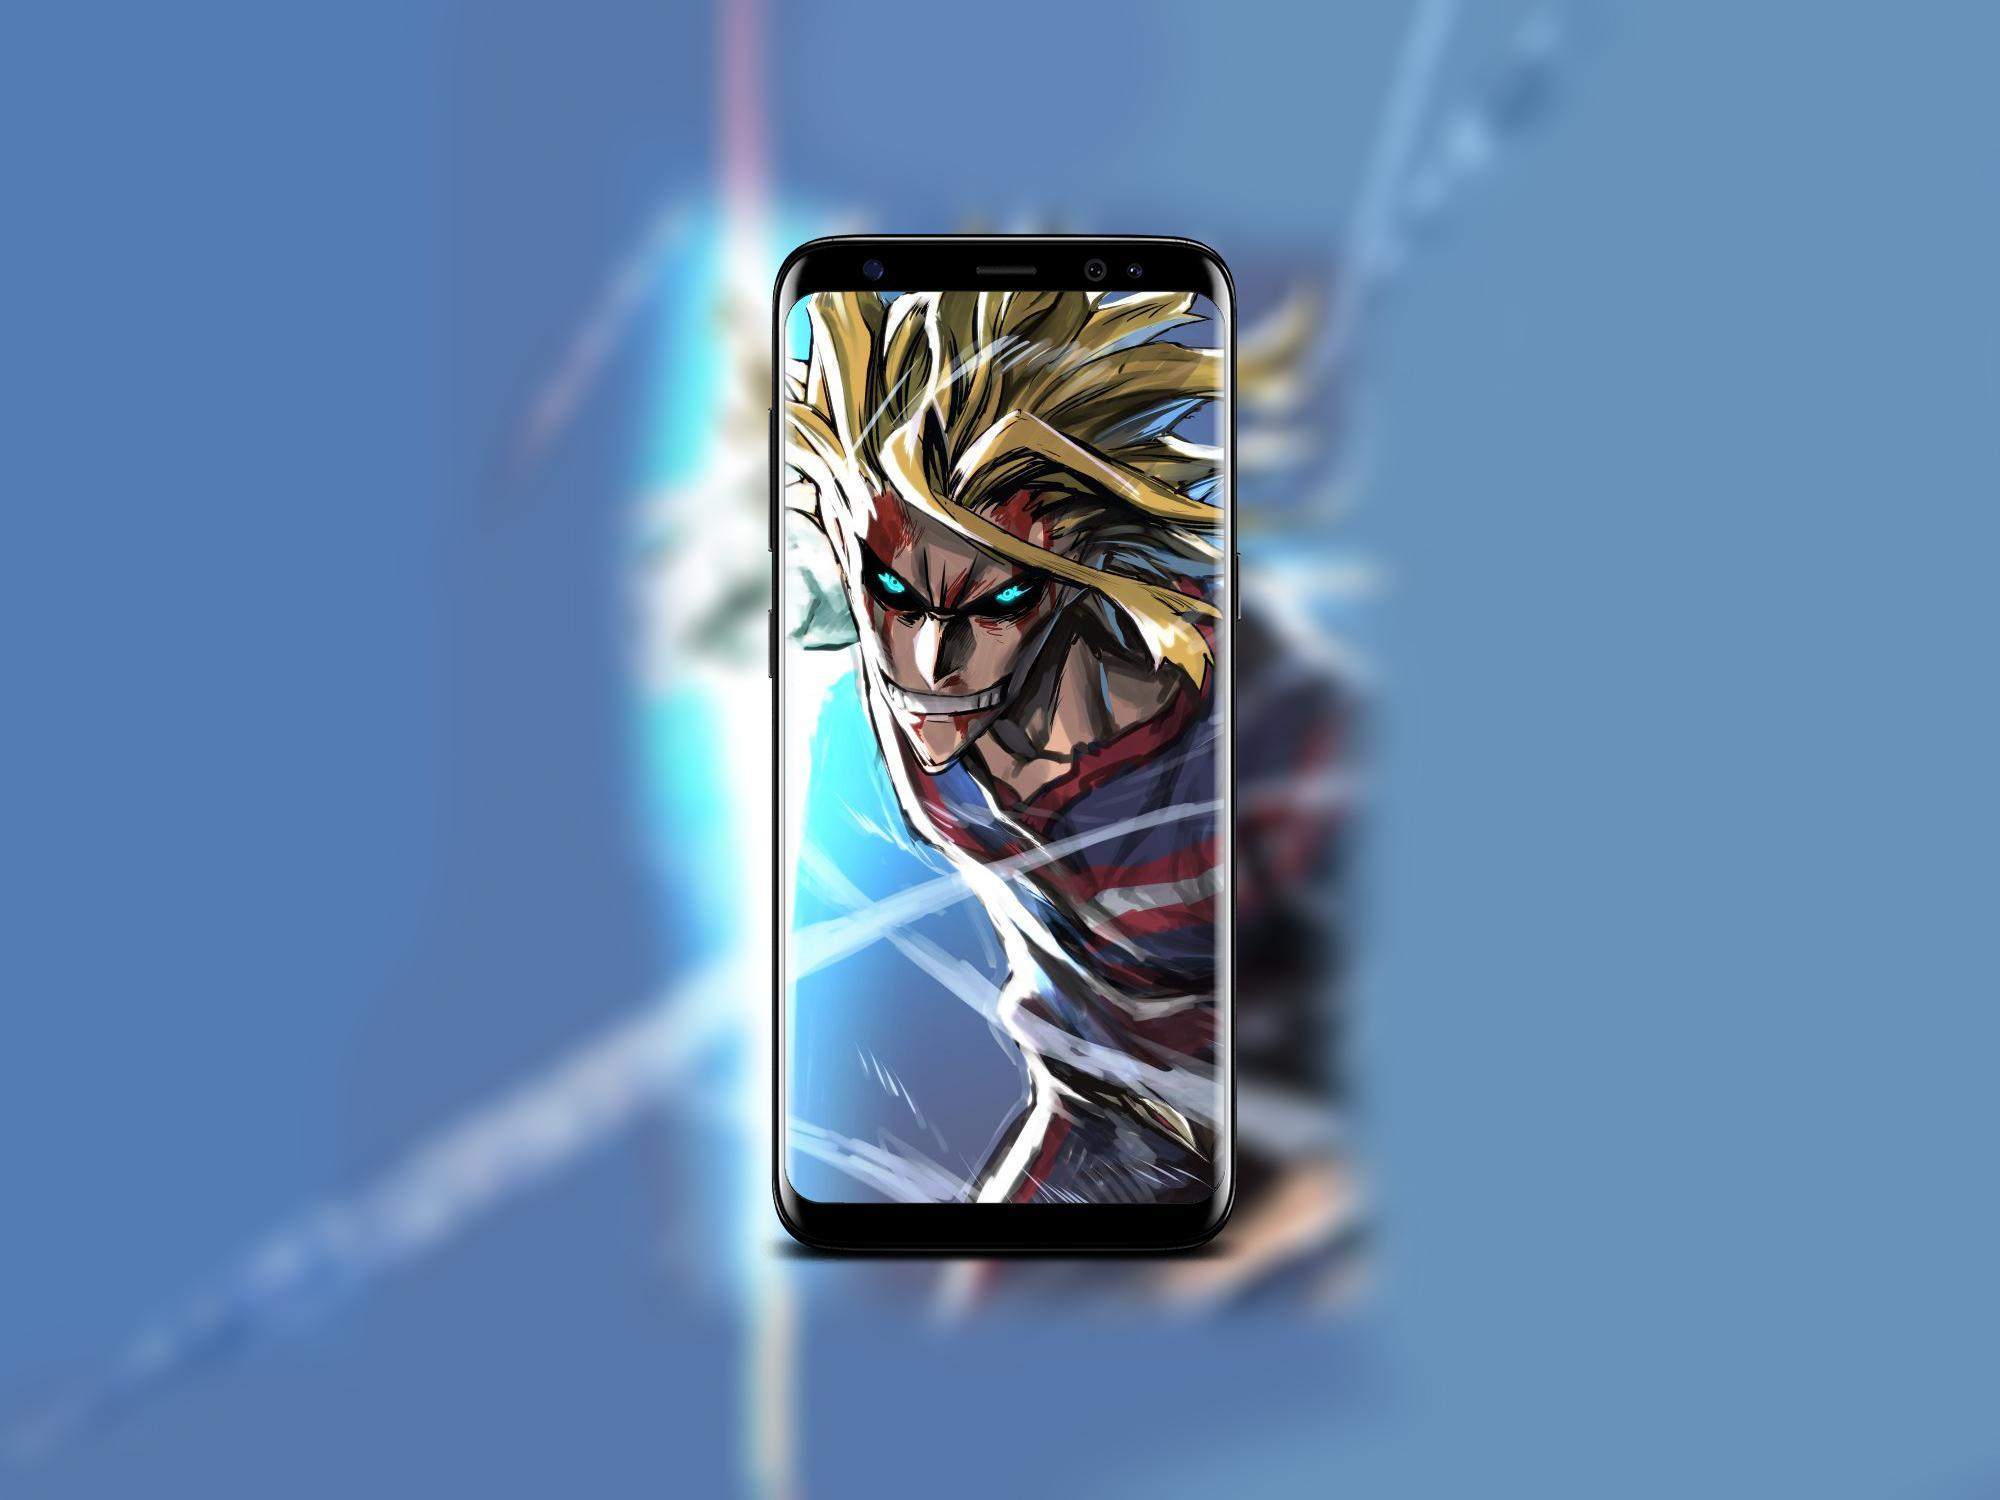 MHA Wallpapers for Android - APK Download